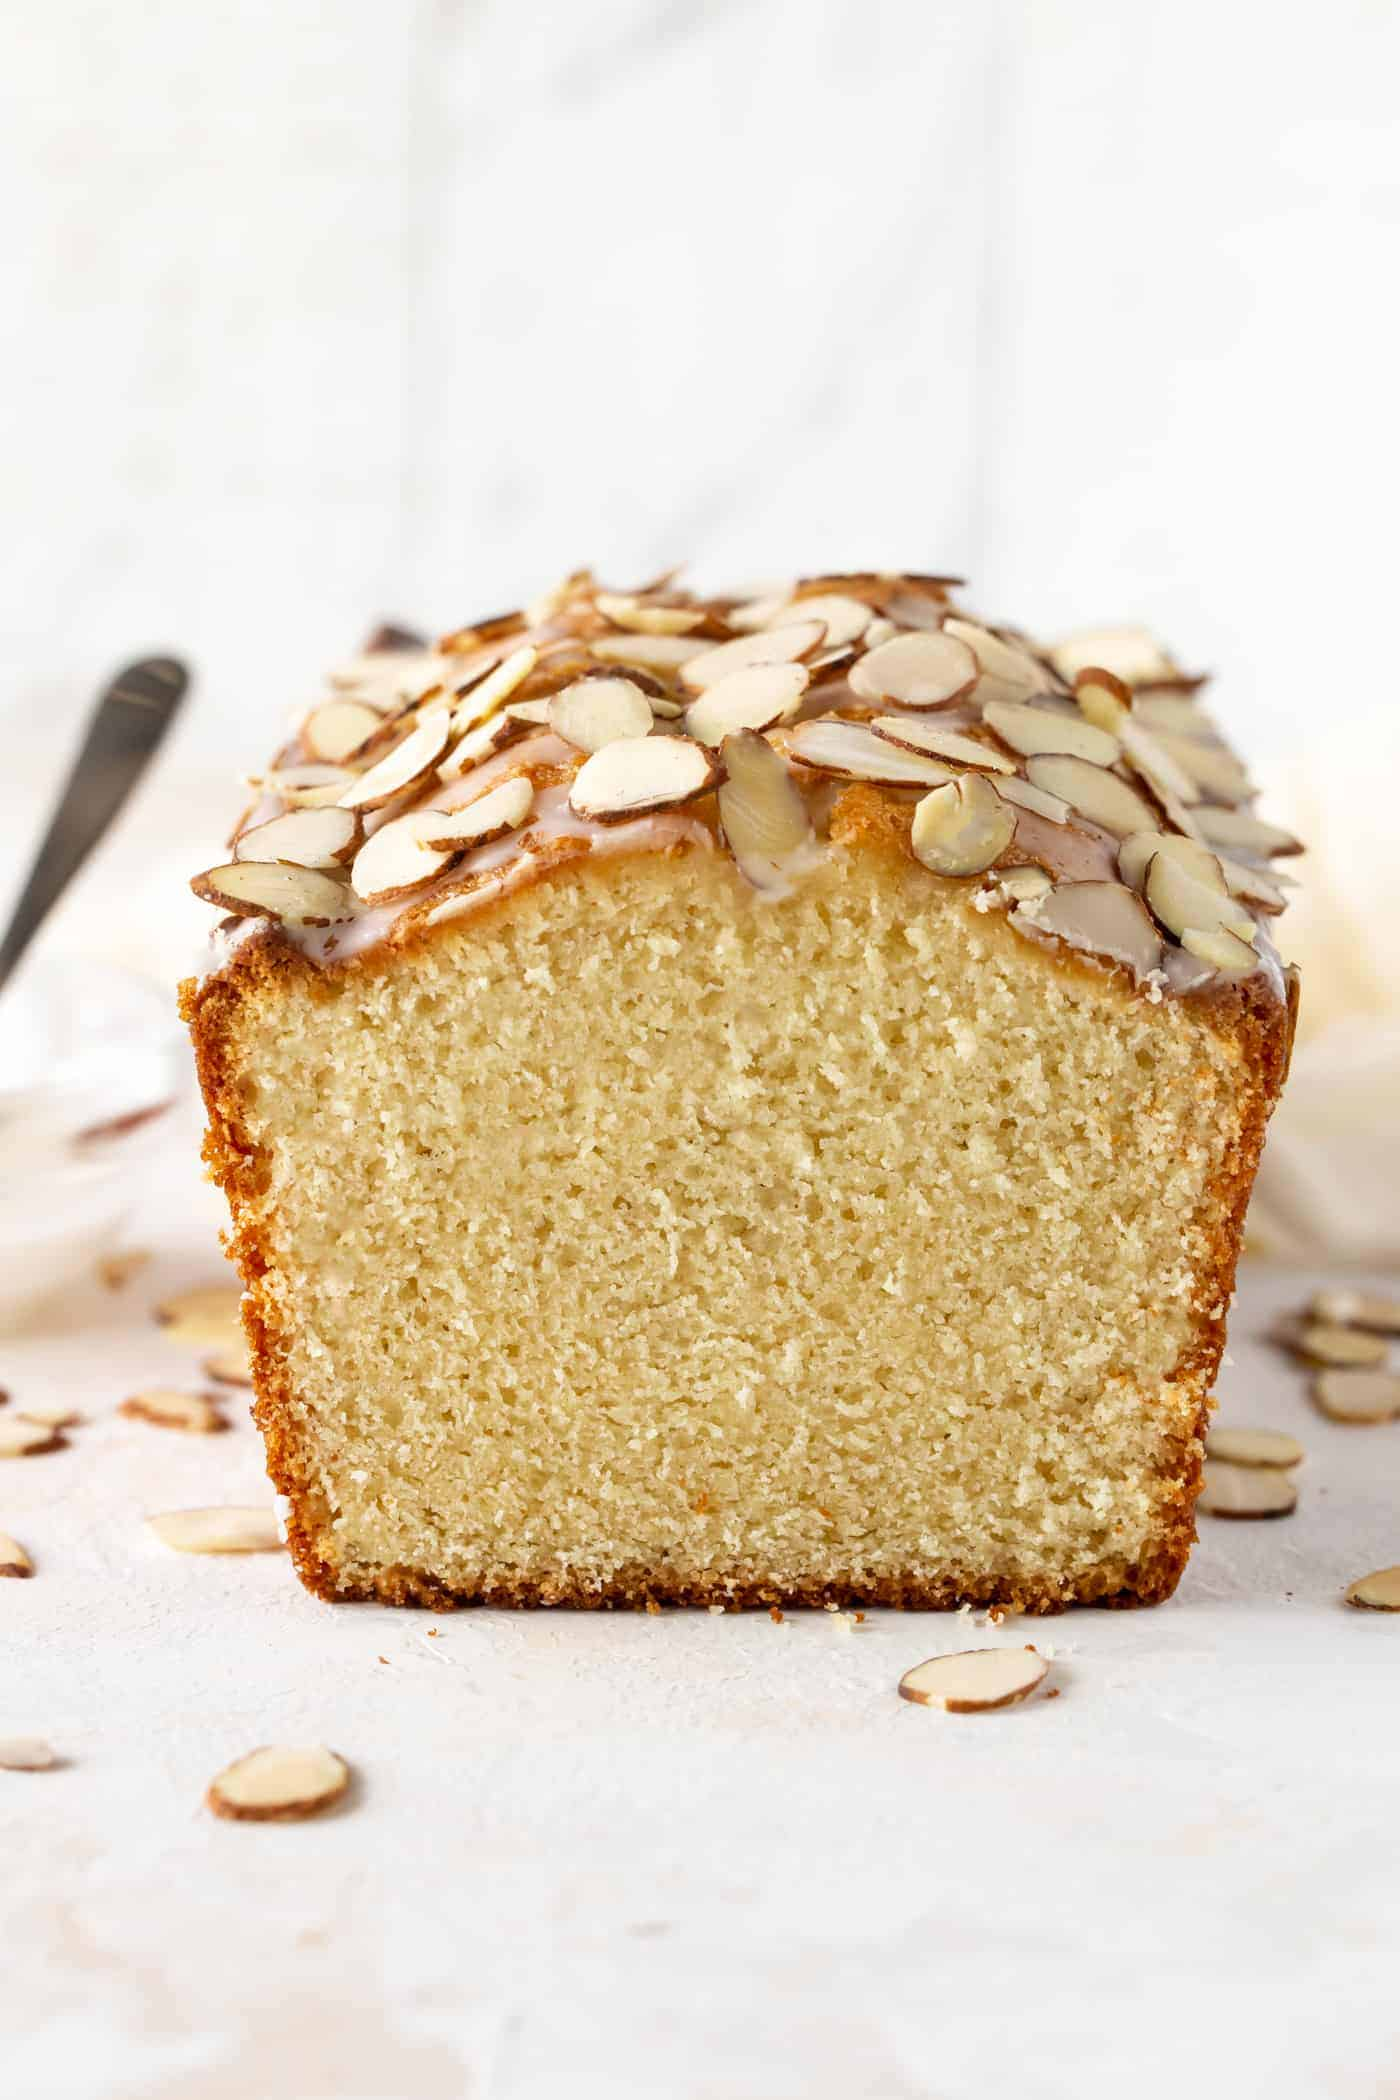 This Almond Pound Cake is drizzled with an almond glaze and sprinkled with more sliced almonds on a white board.